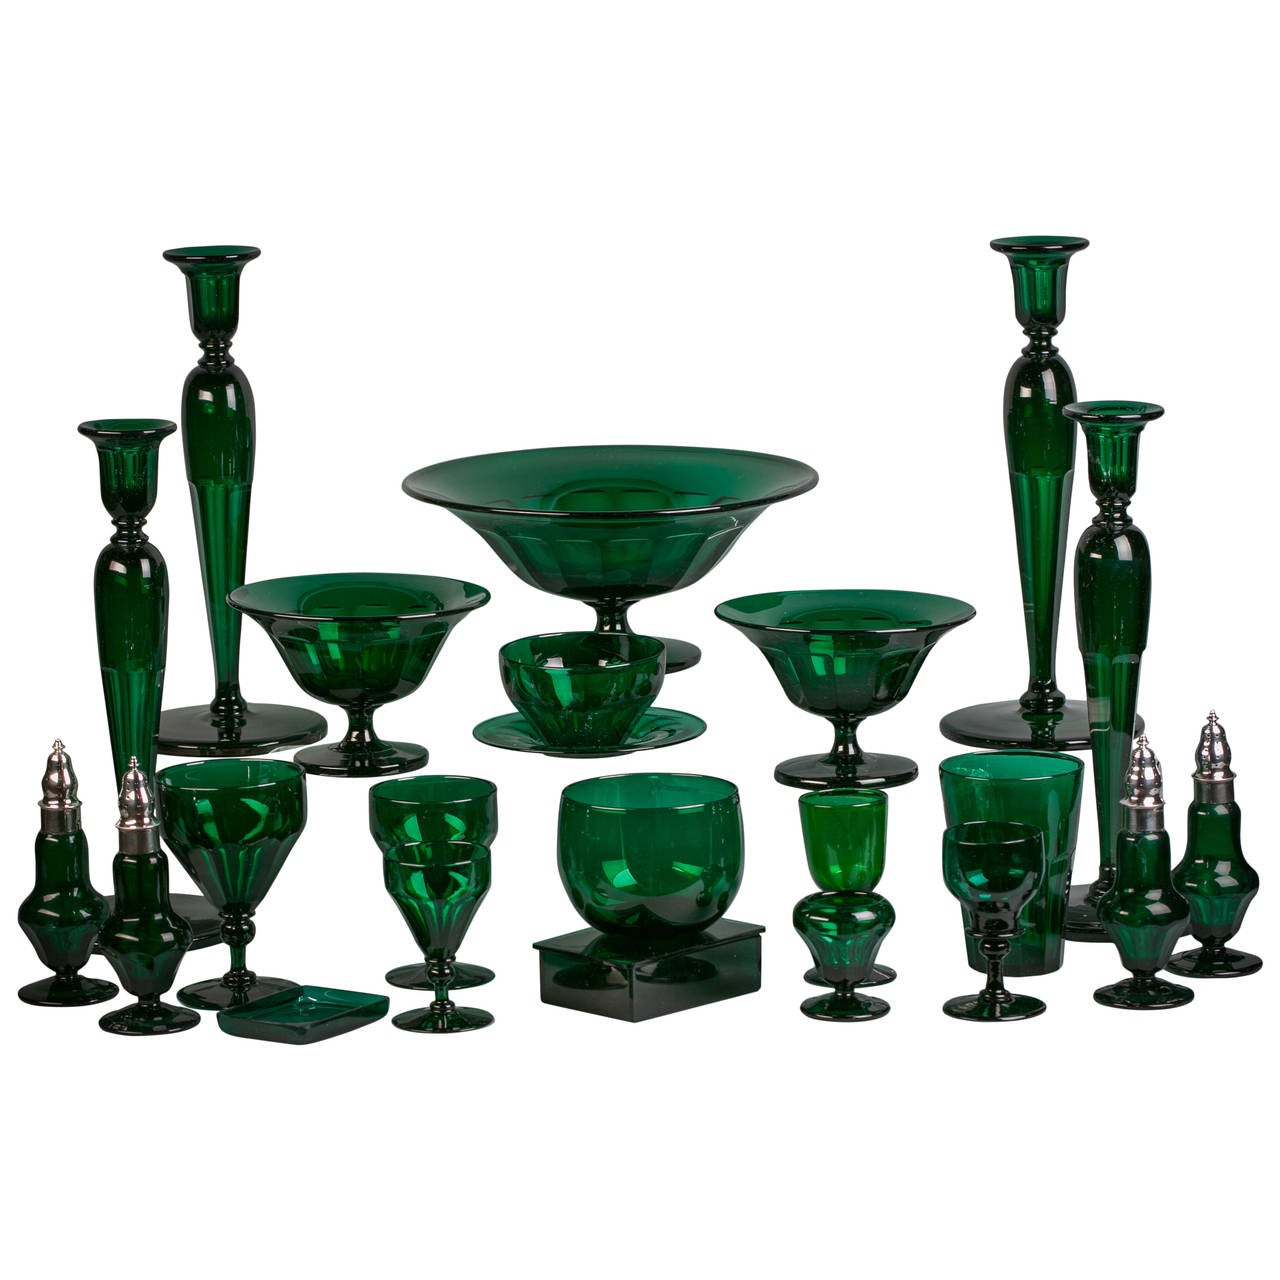 Large English Emerald Green Glass Service, circa 1880